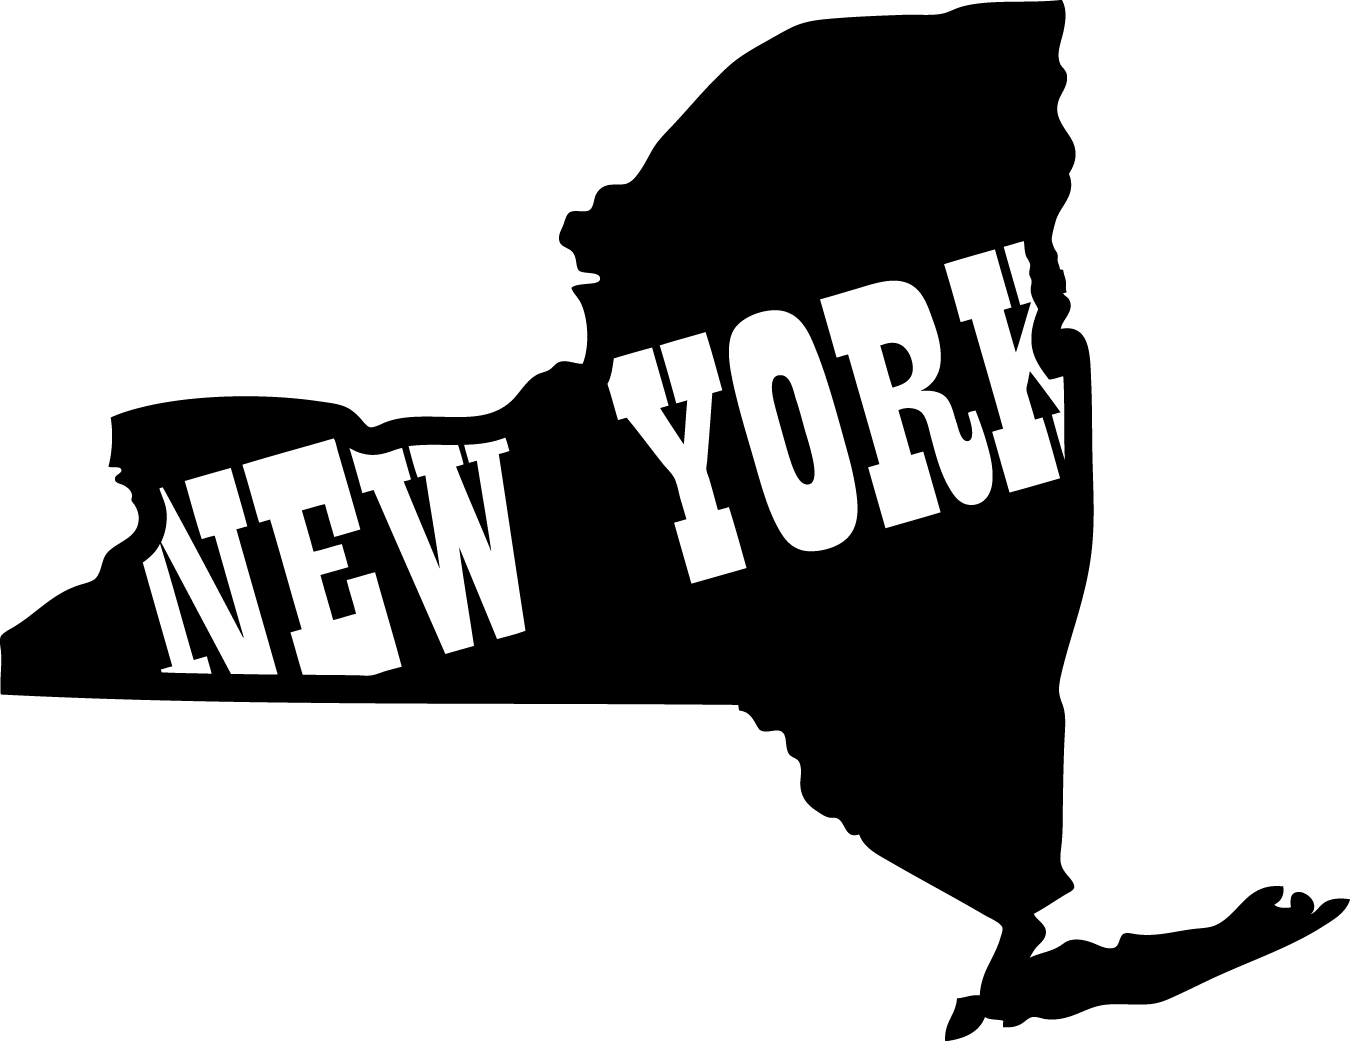 New york png state. Clipart clip art library